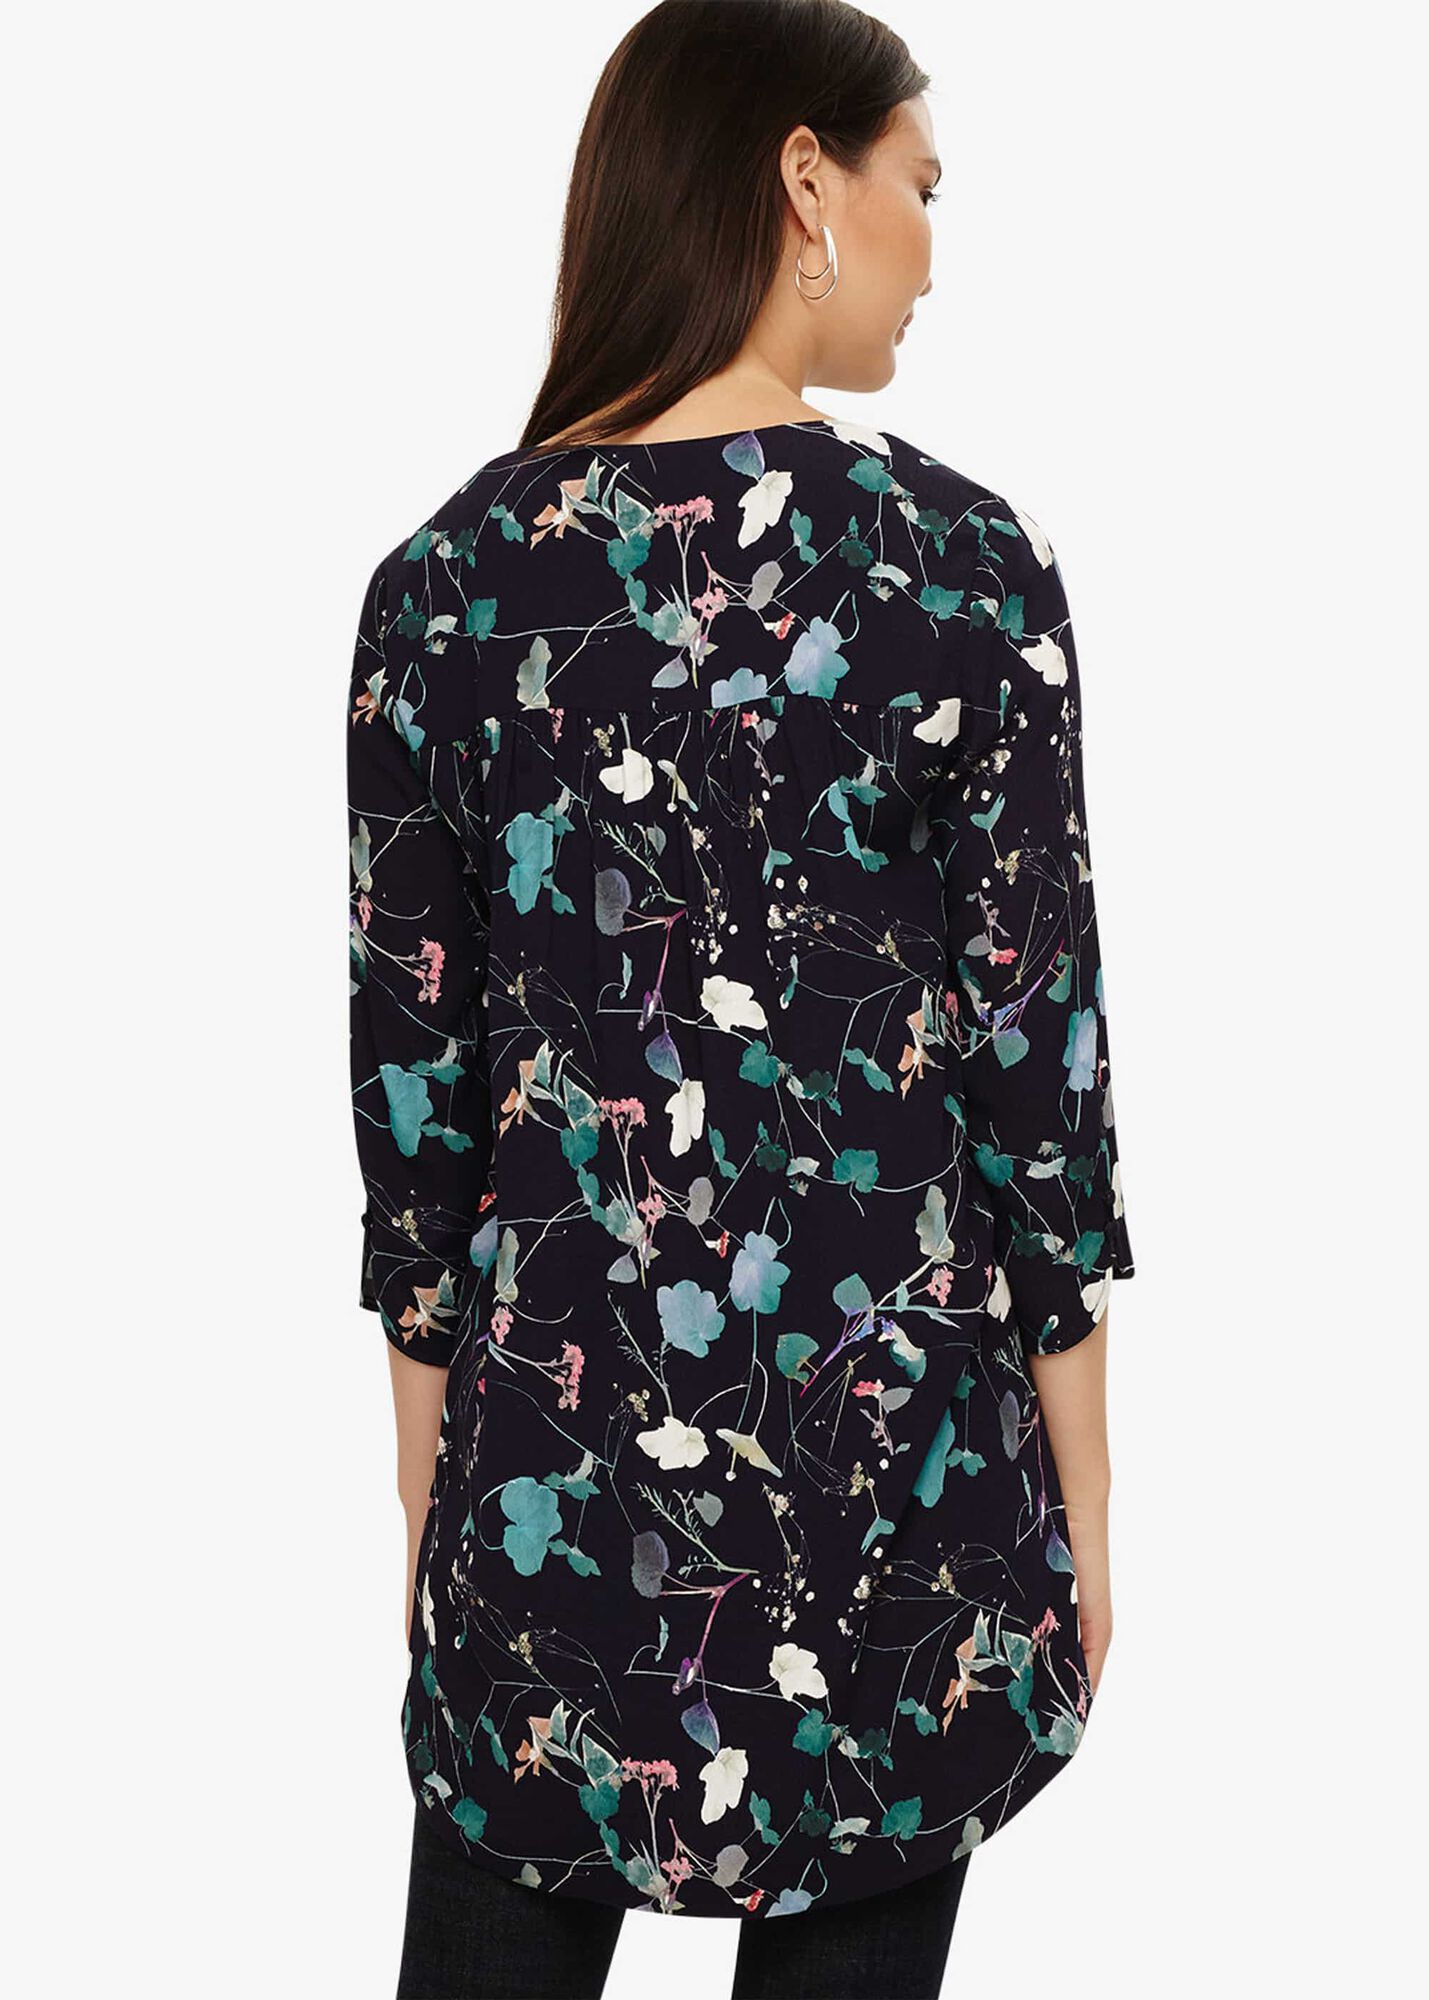 ea24cacd23b Pearly Floral Tunic Top. Previous Next. Phase Eight